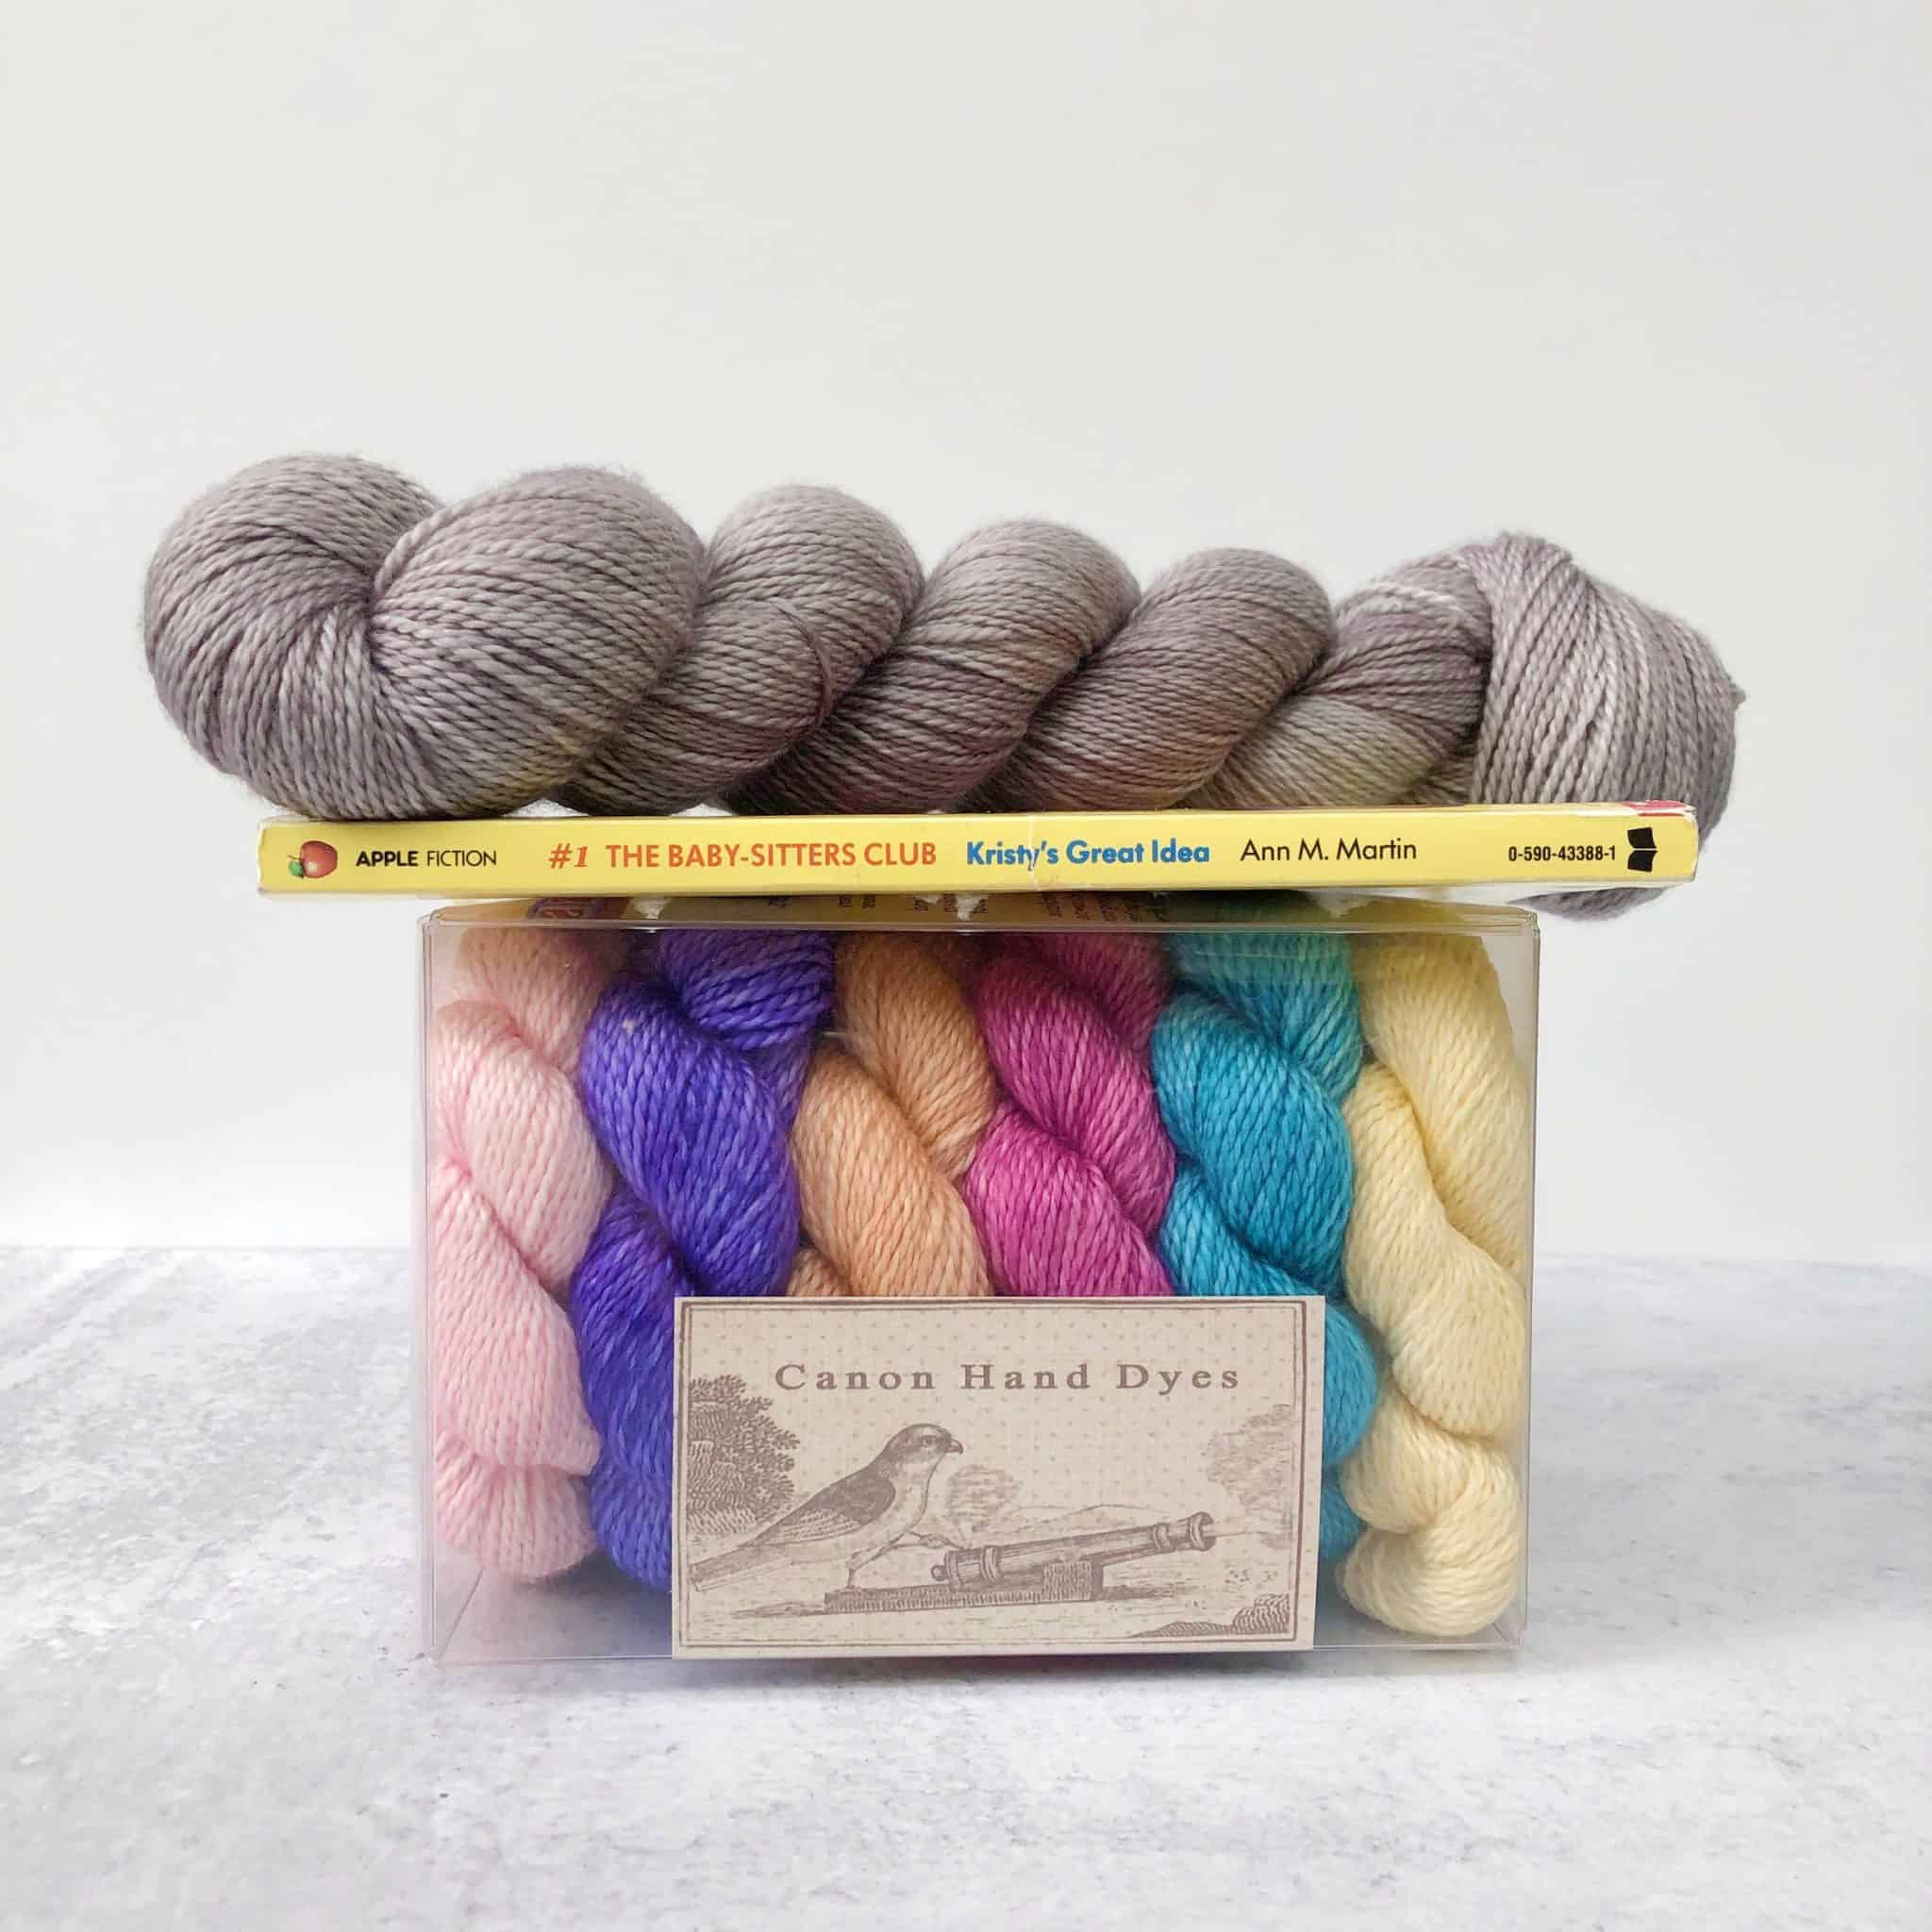 Gray yarn atop a book and a box of colorful mini skeins.